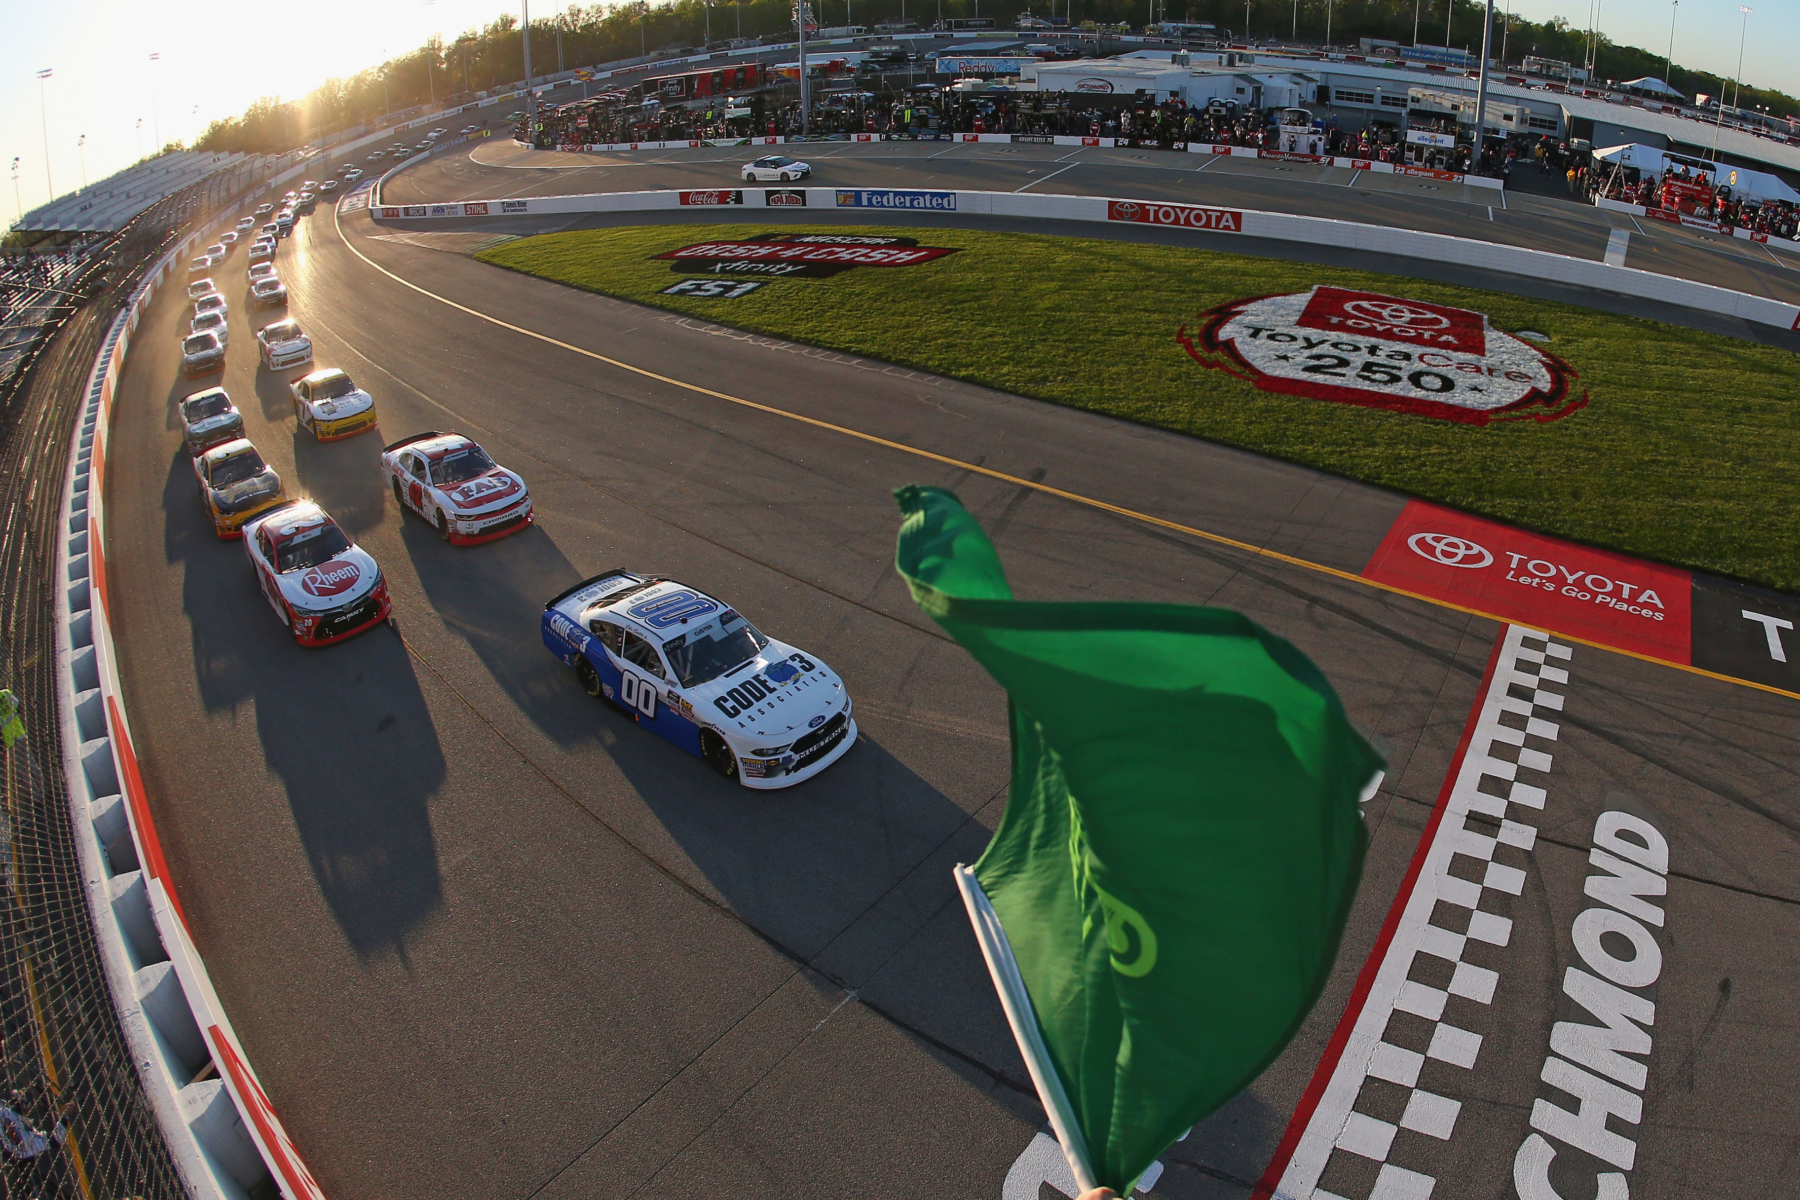 Cole Custer takes the green flag in the NASCAR Xfinity Series race at Richmond Raceway